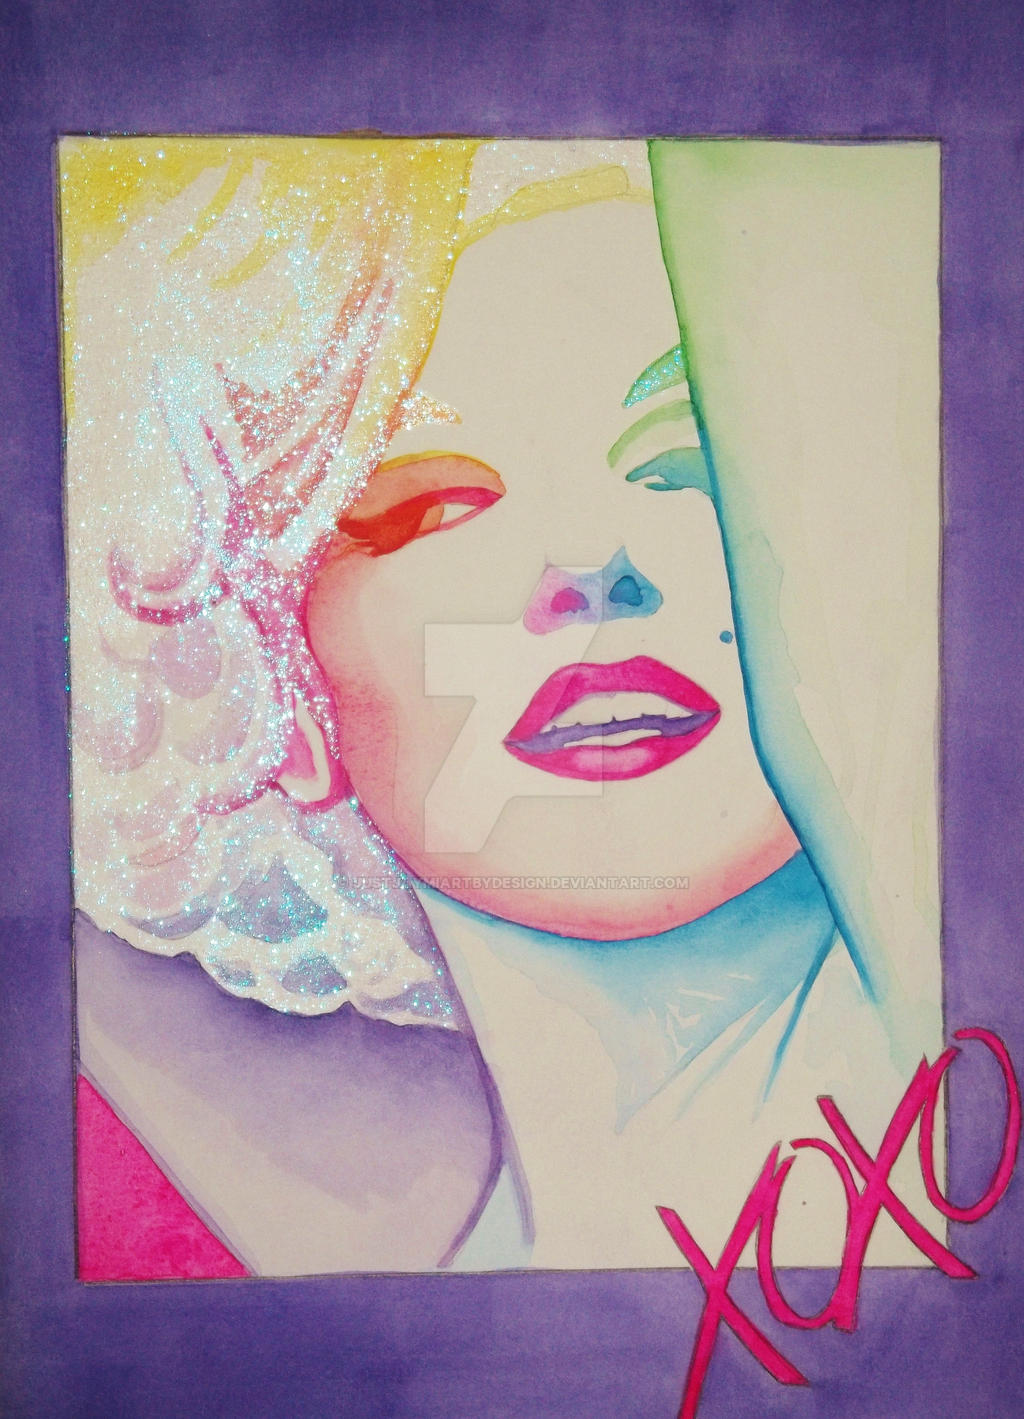 Marilyn Triad 3 by justjaymiartbydesign on DeviantArt